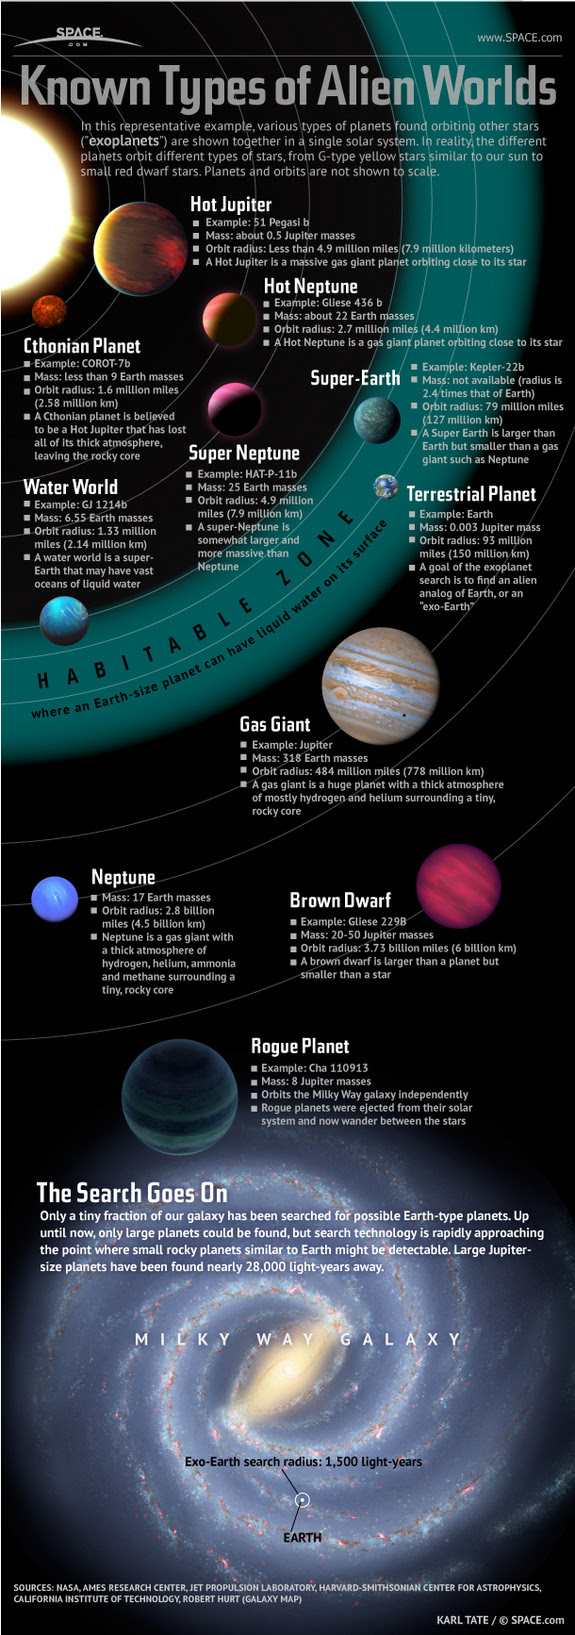 Learn about the weird kinds of alien planets that orbit other stars in this SPACE.com infographic.